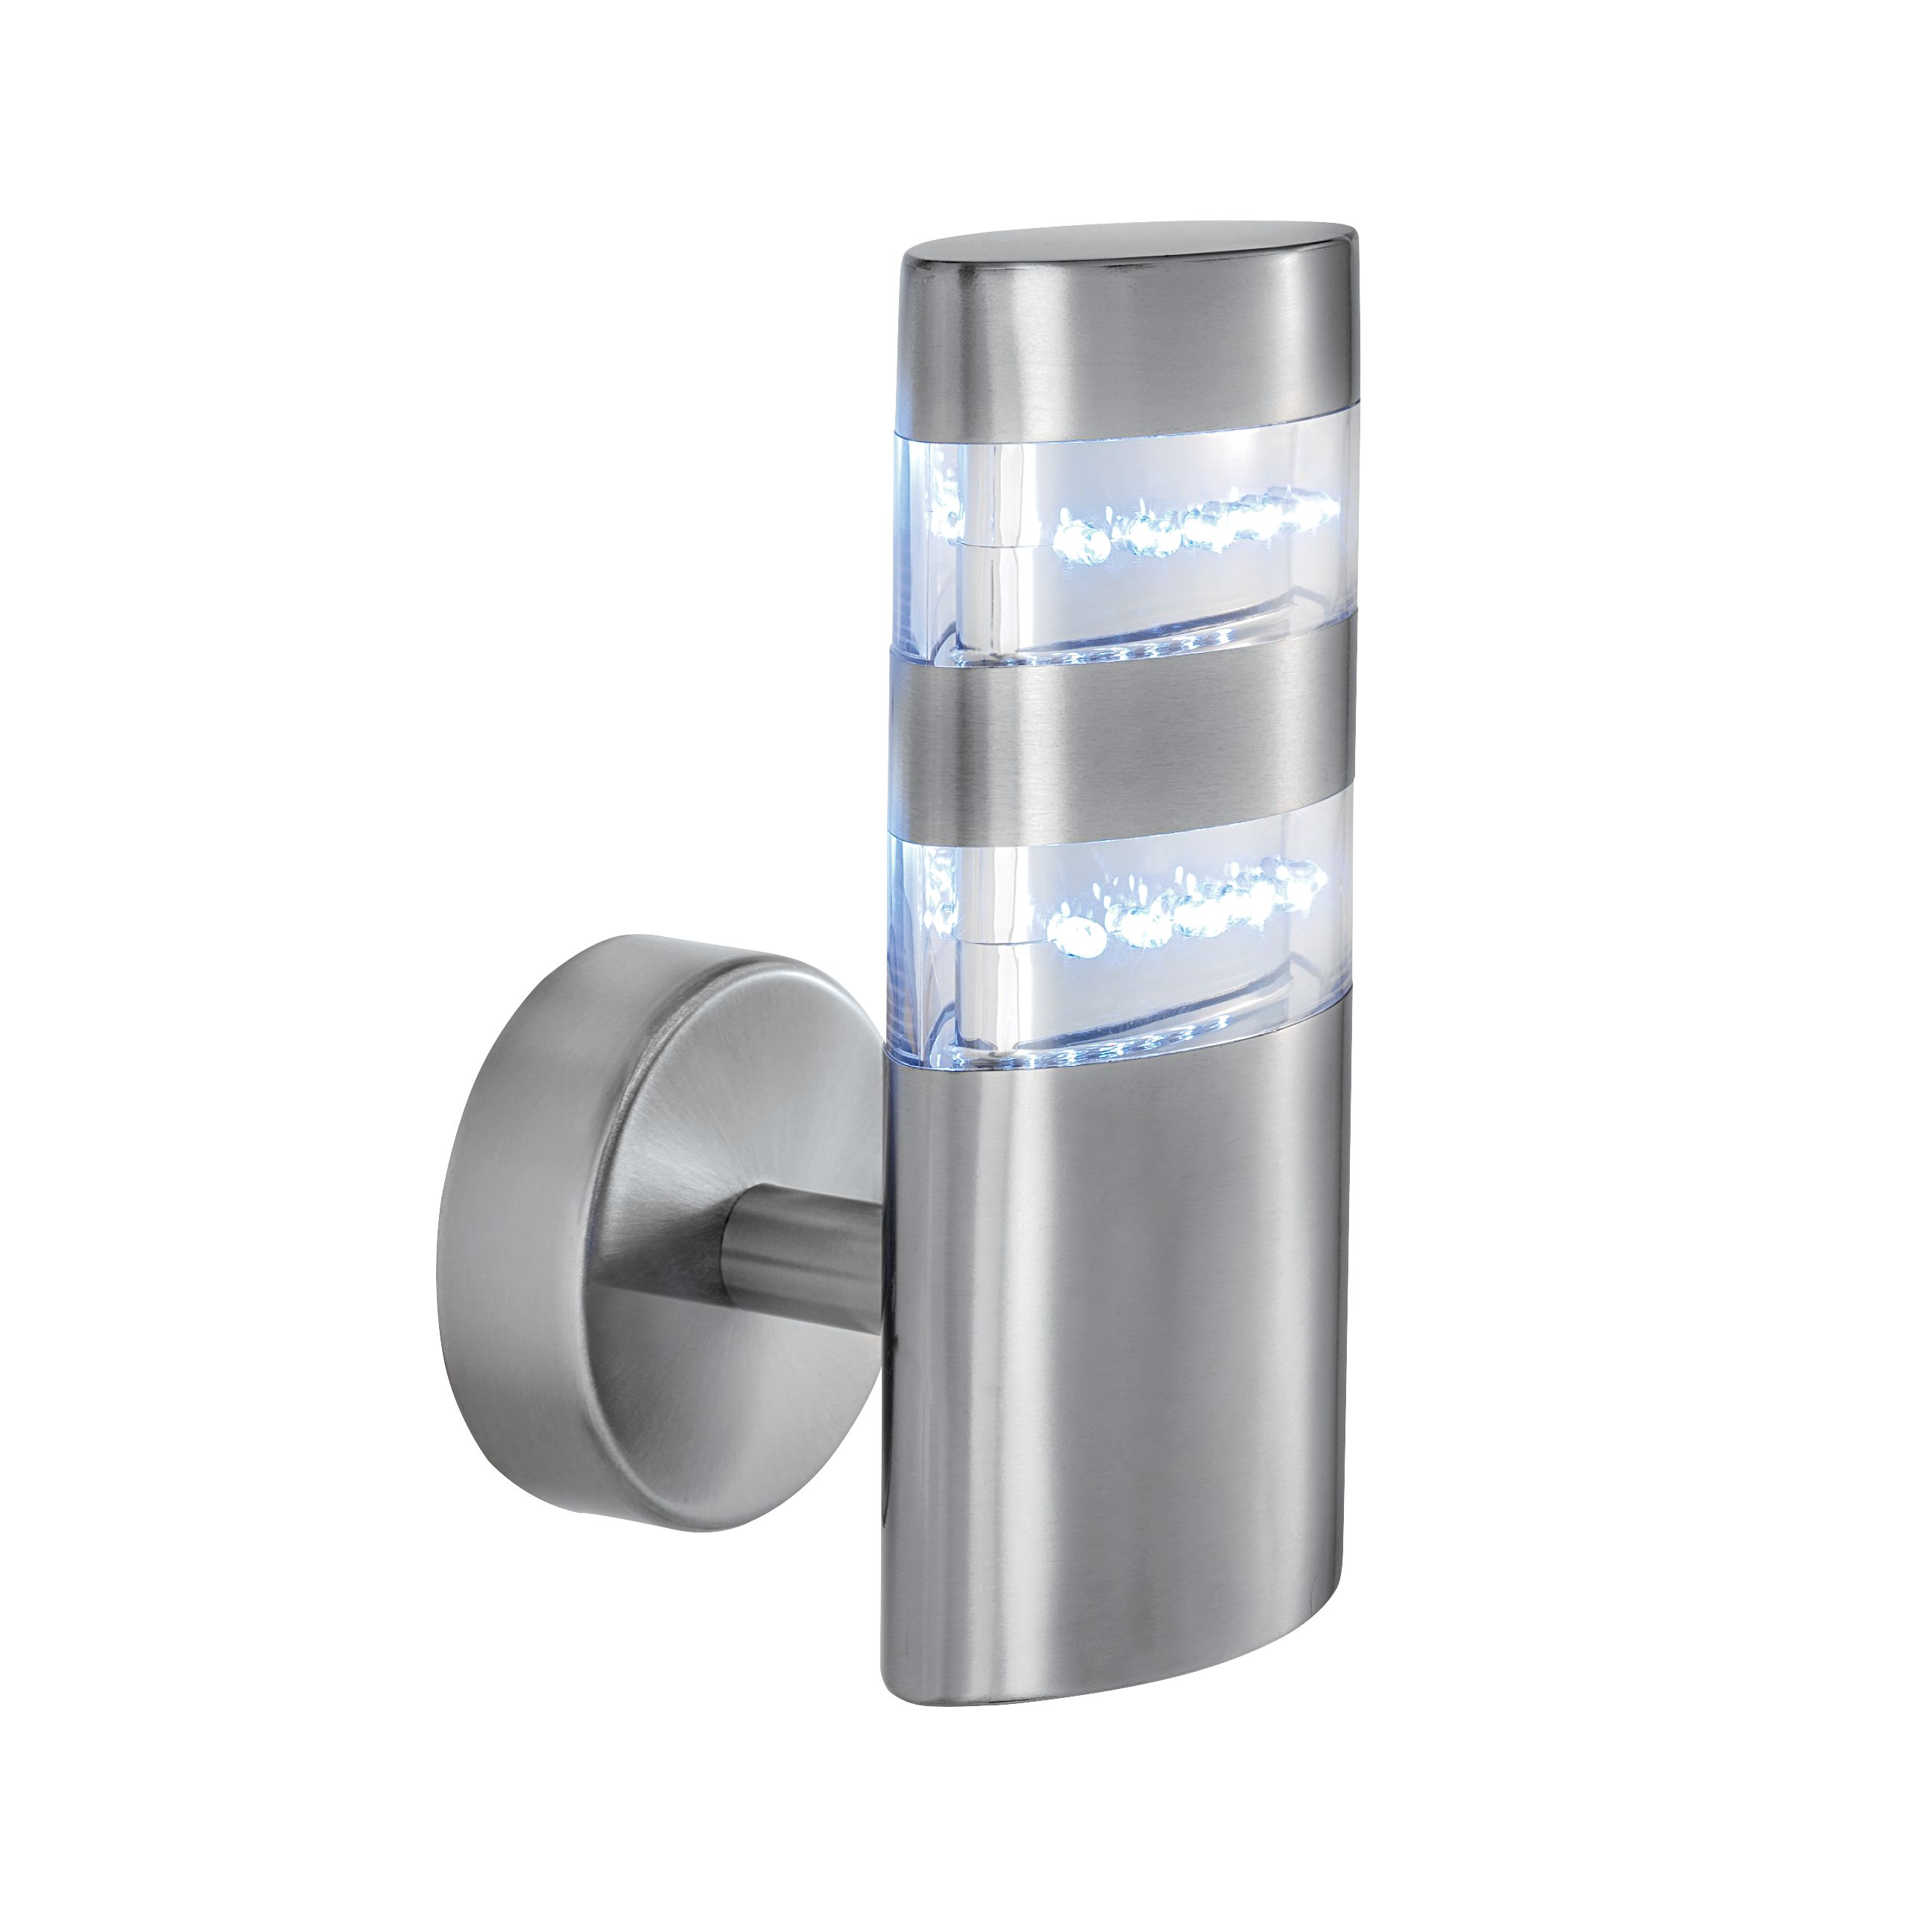 Stainless Steel Ip44 24 Led Outdoor Wall Light With Clear Polycarbonate Diffuser